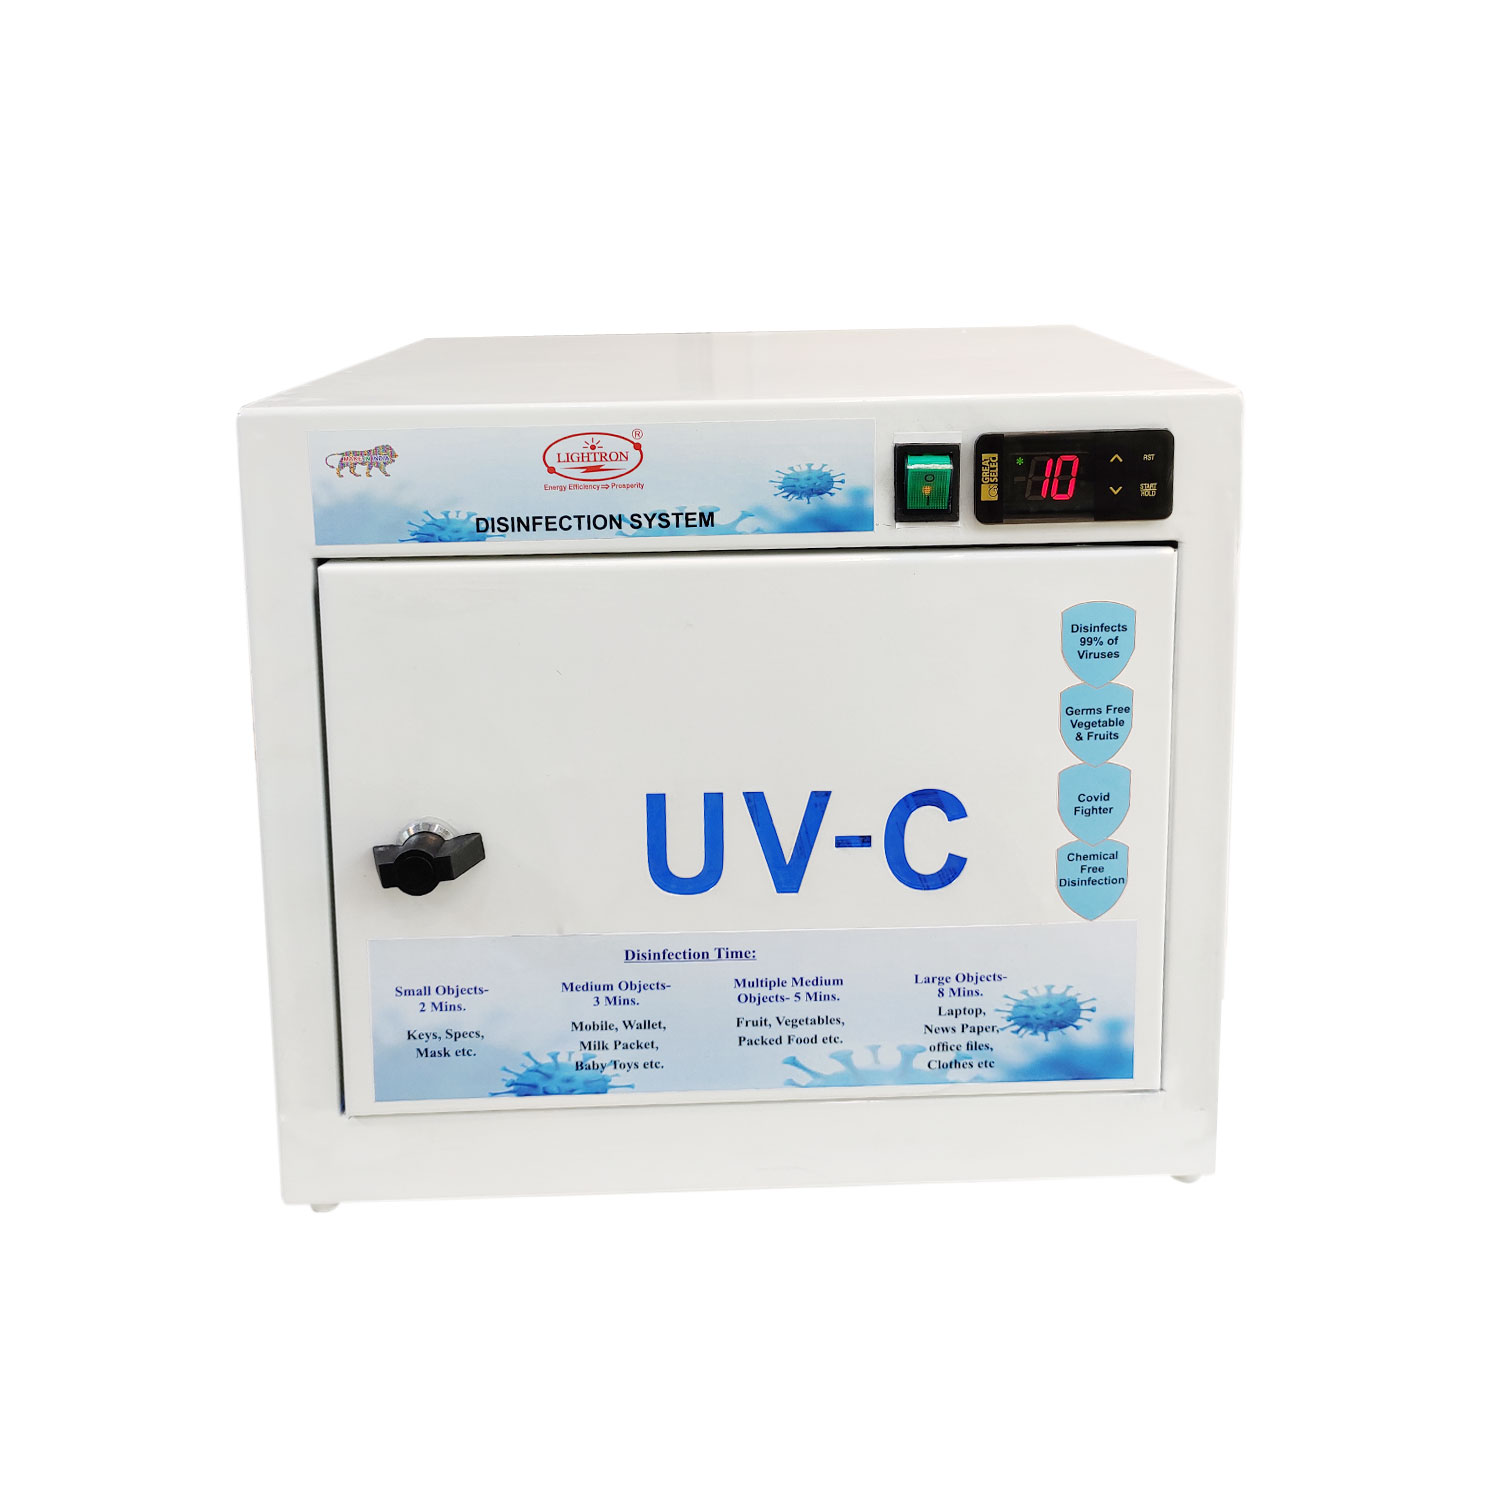 UV-C CORONA DISINFECTION BOX